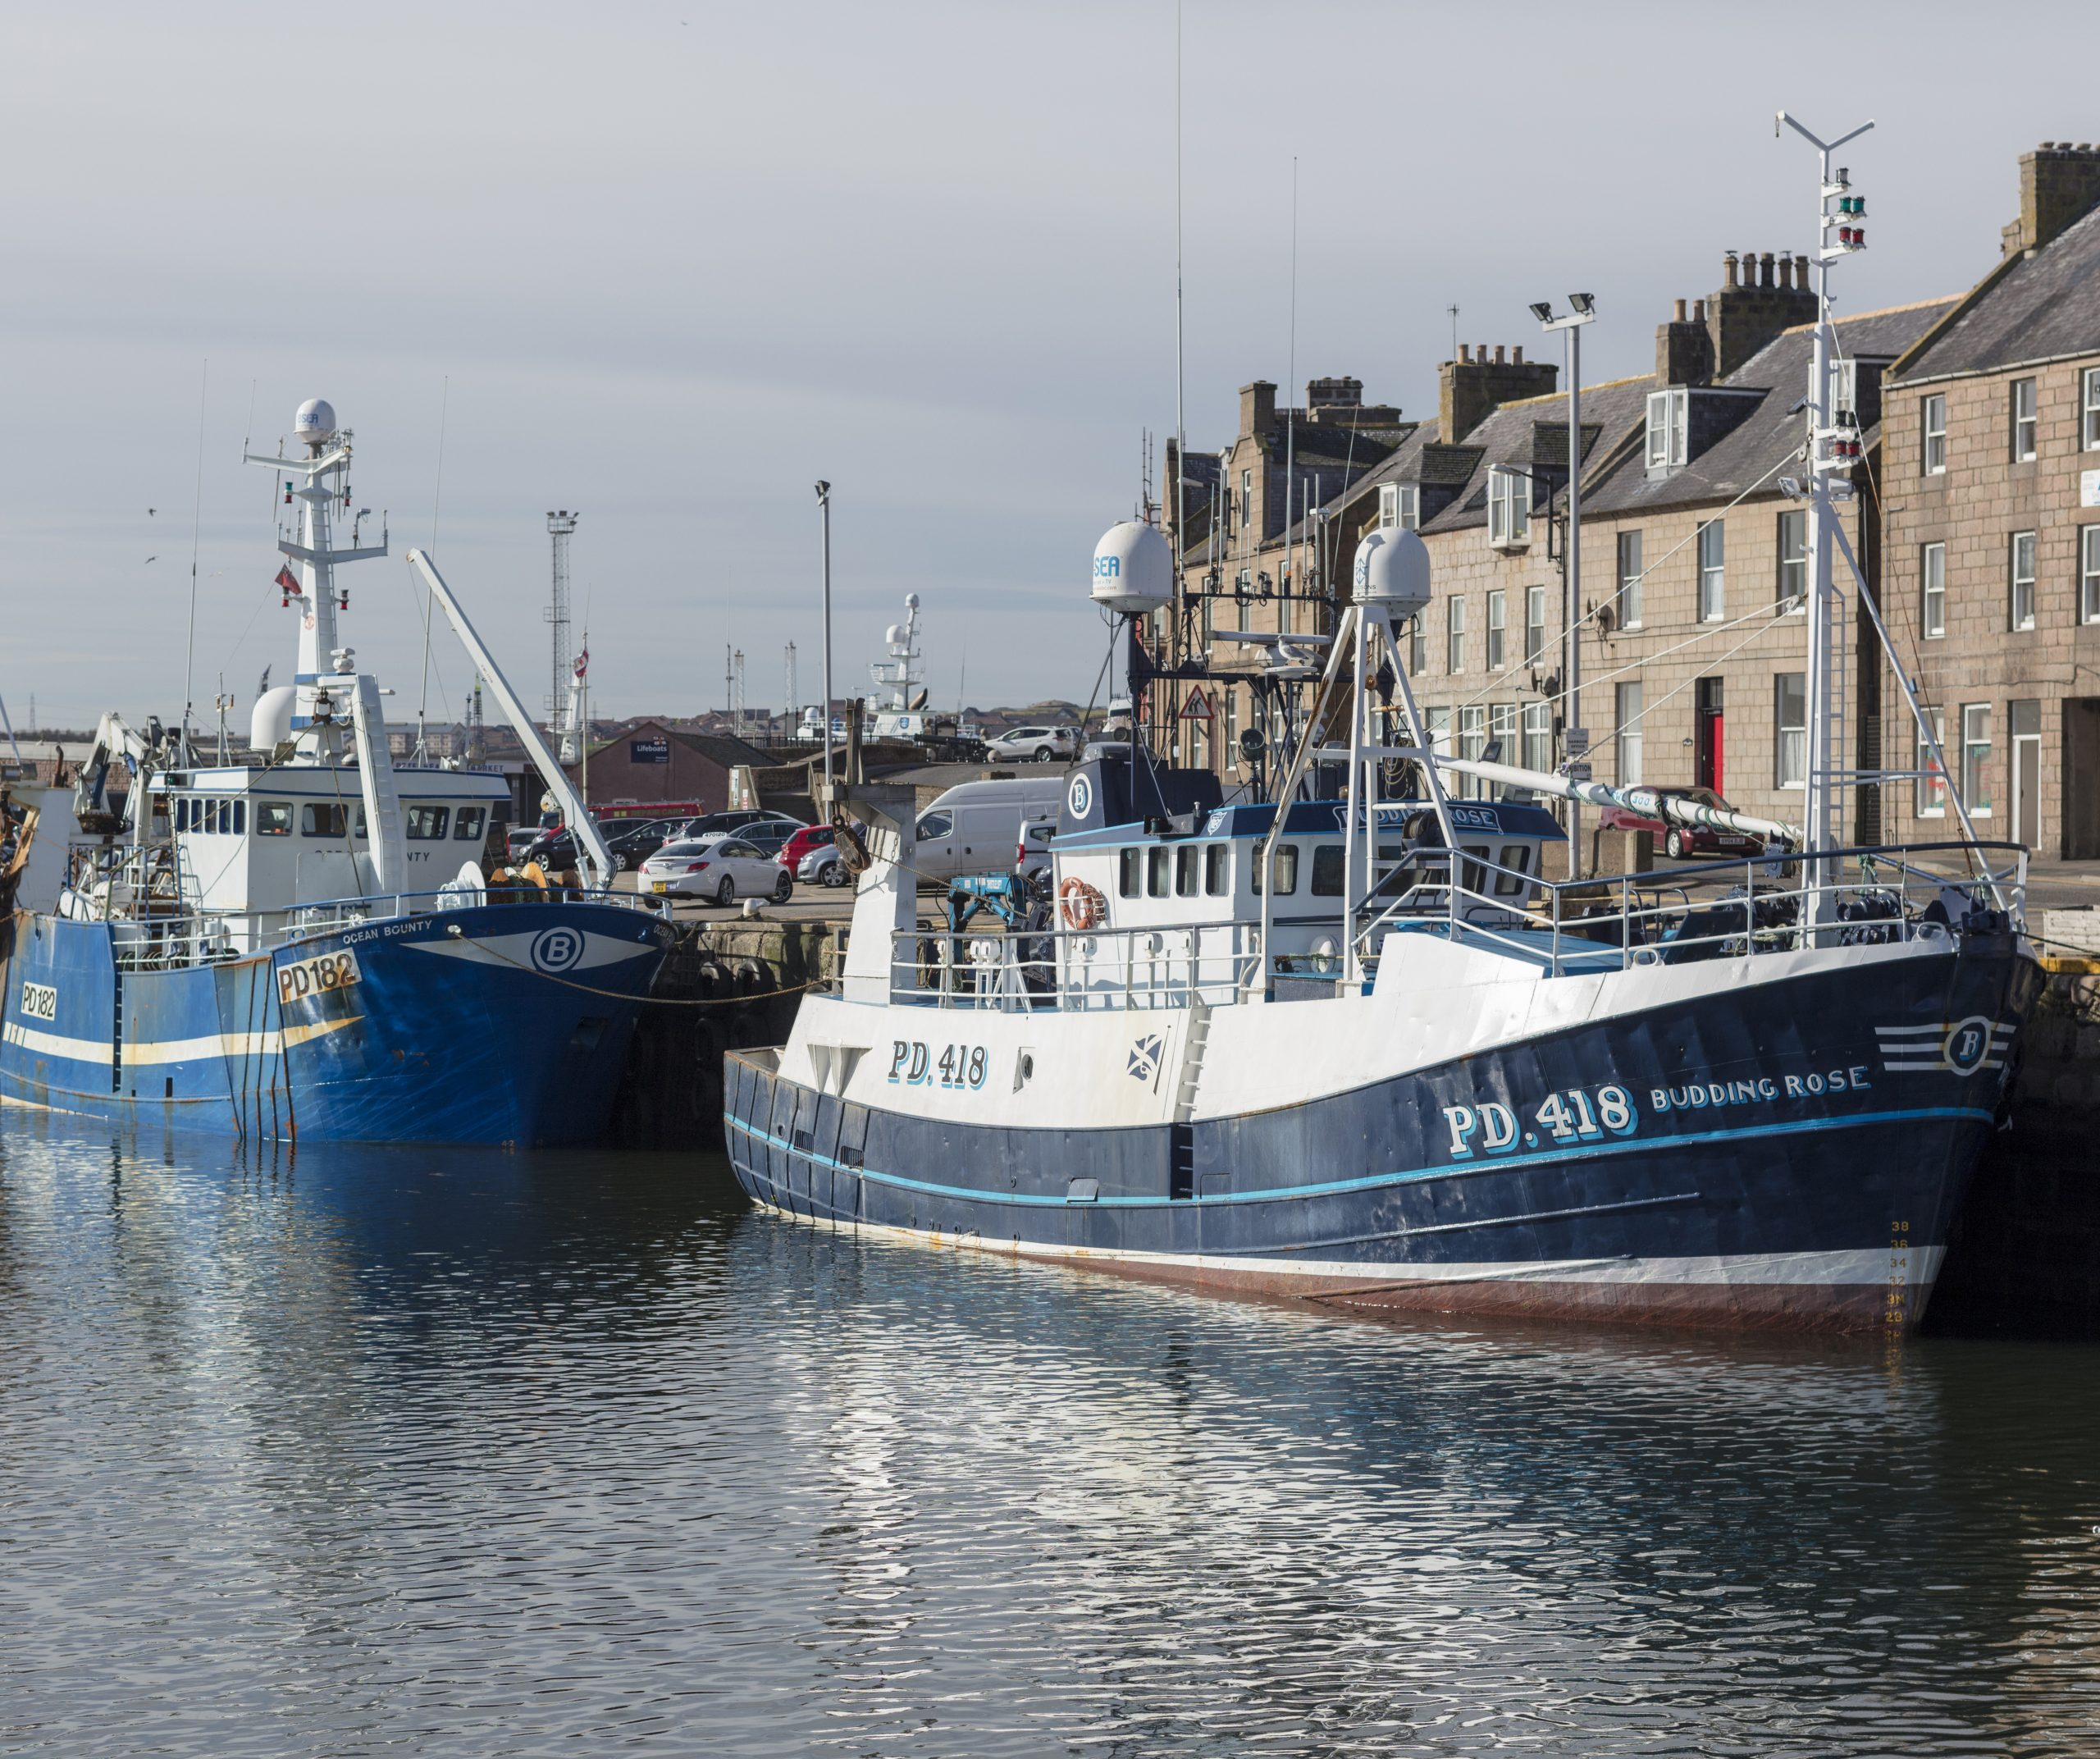 The Scottish Fishermen's Federation has reacted to the failed fisheries deal between the UK and Norway